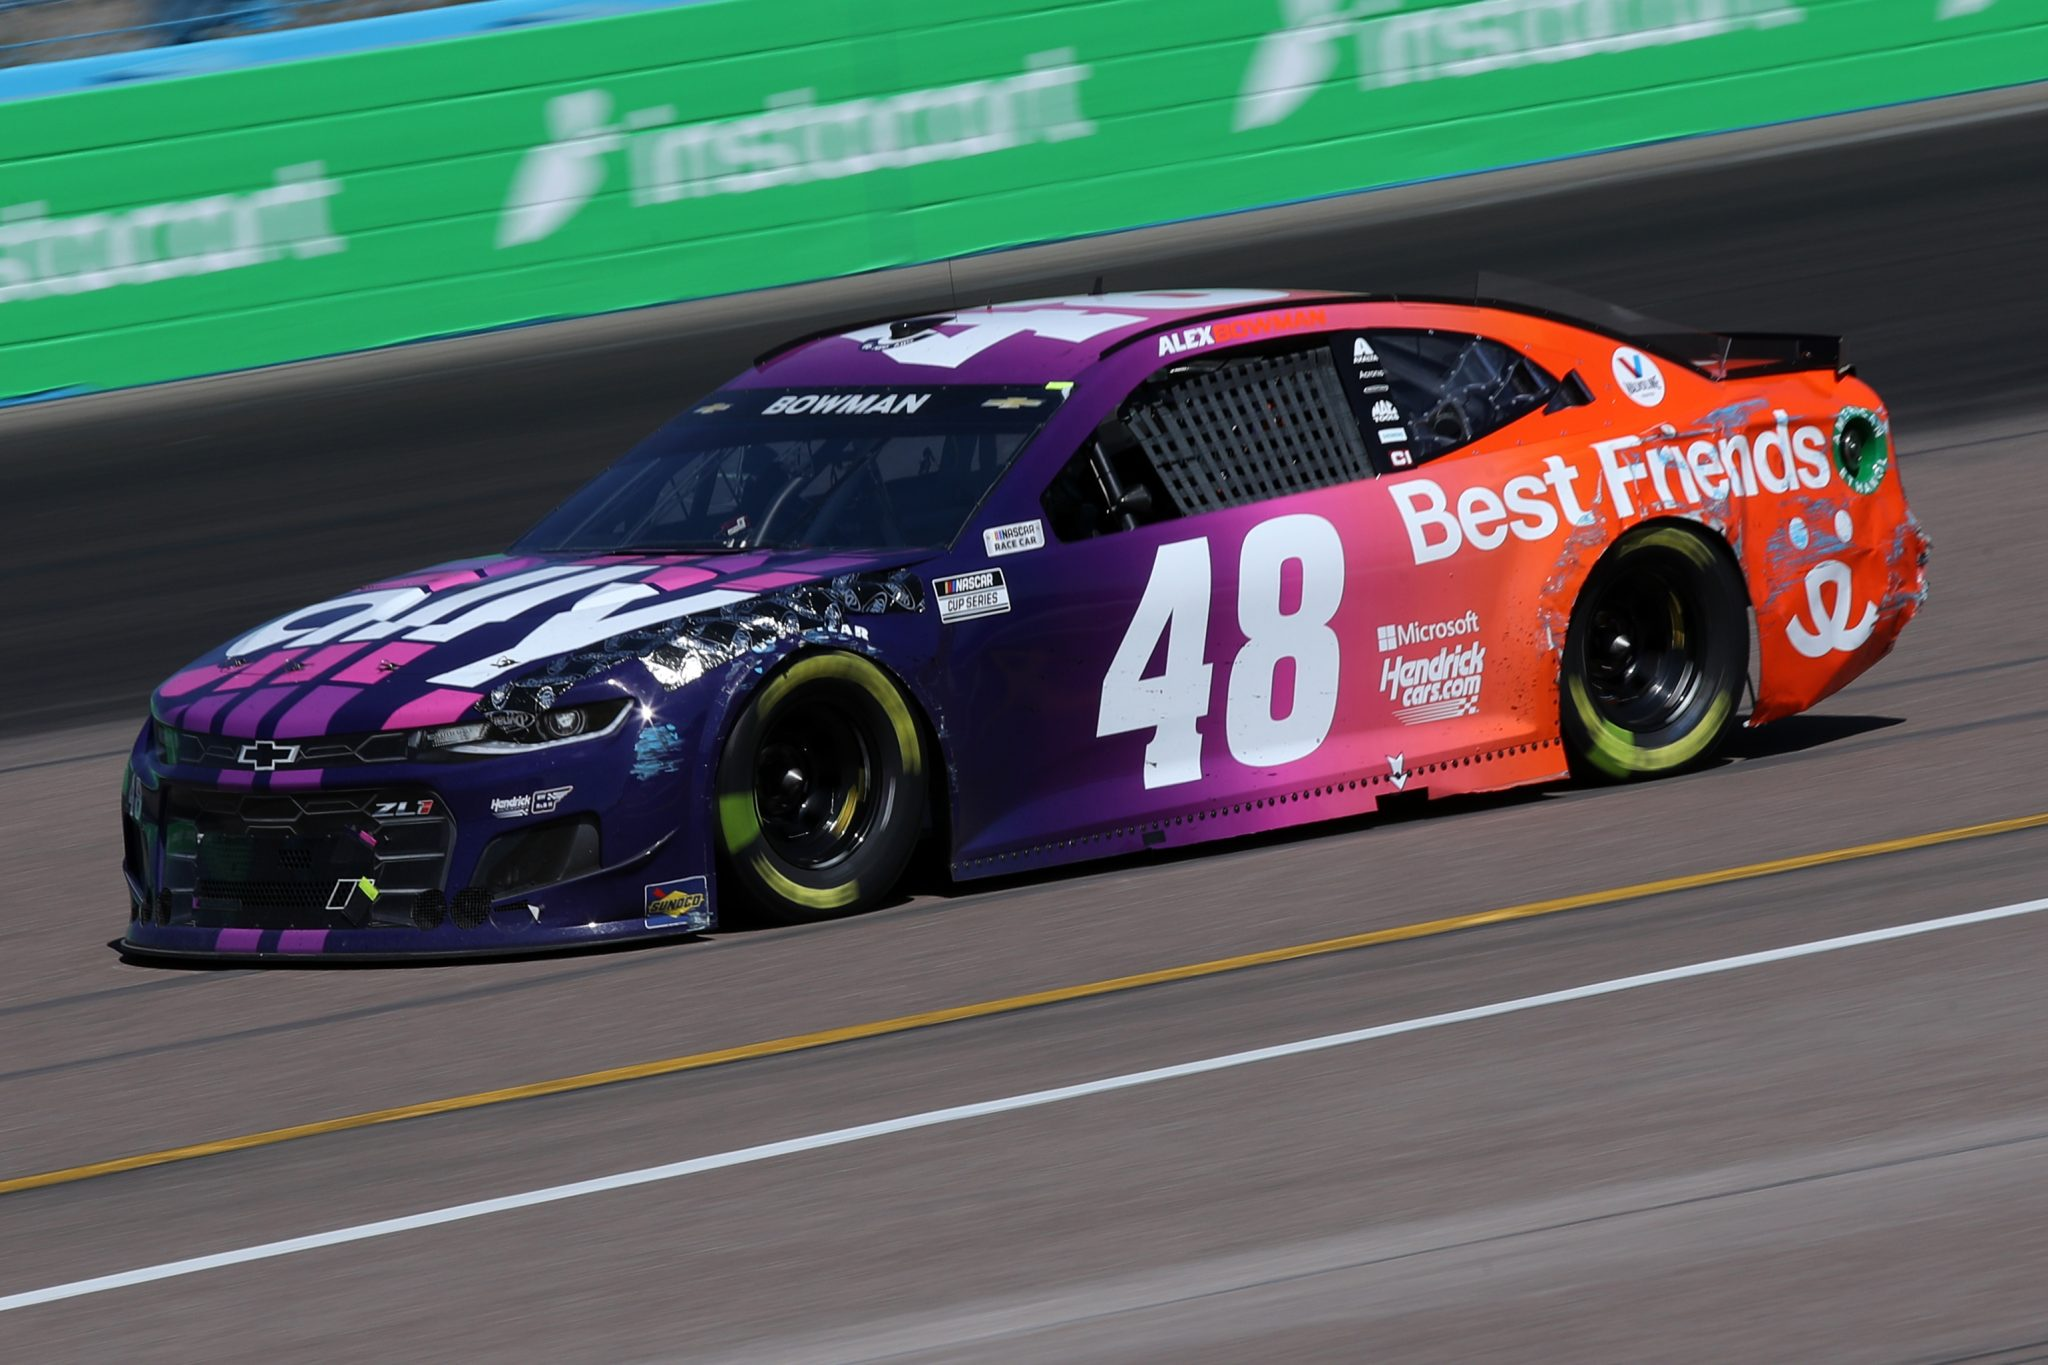 AVONDALE, ARIZONA - MARCH 14: Alex Bowman, driver of the #48 Ally/Best Friends Chevrolet, drives during the NASCAR Cup Series Instacart 500 at Phoenix Raceway on March 14, 2021 in Avondale, Arizona. (Photo by Sean Gardner/Getty Images) | Getty Images